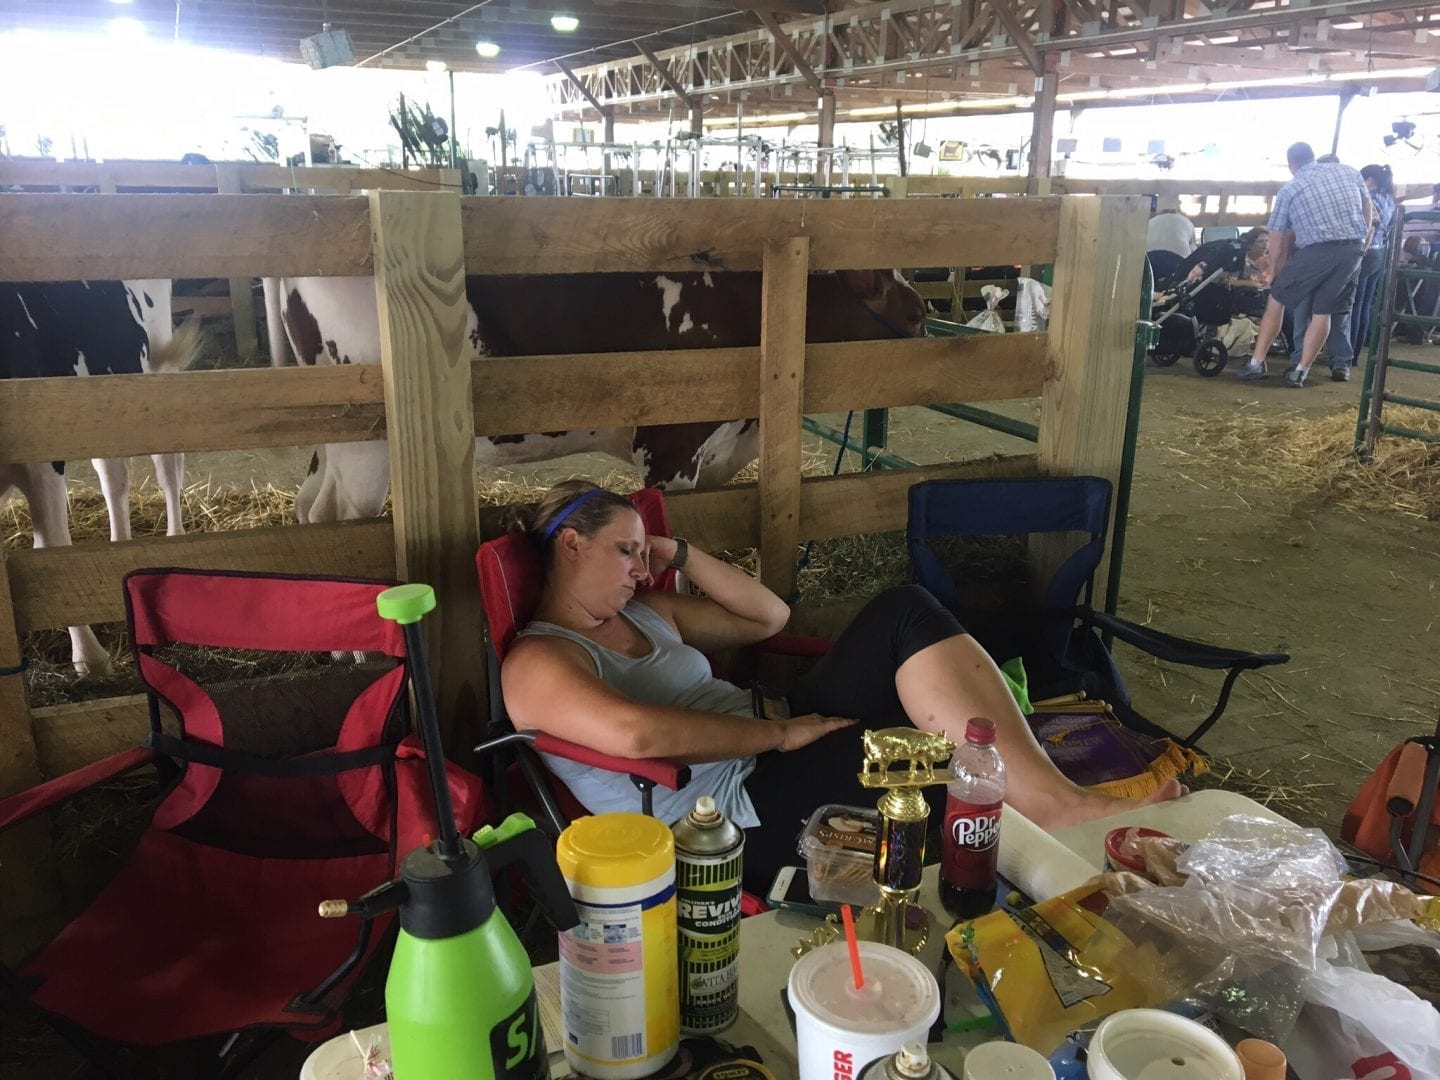 What you need to have at a livestock show or county fair?